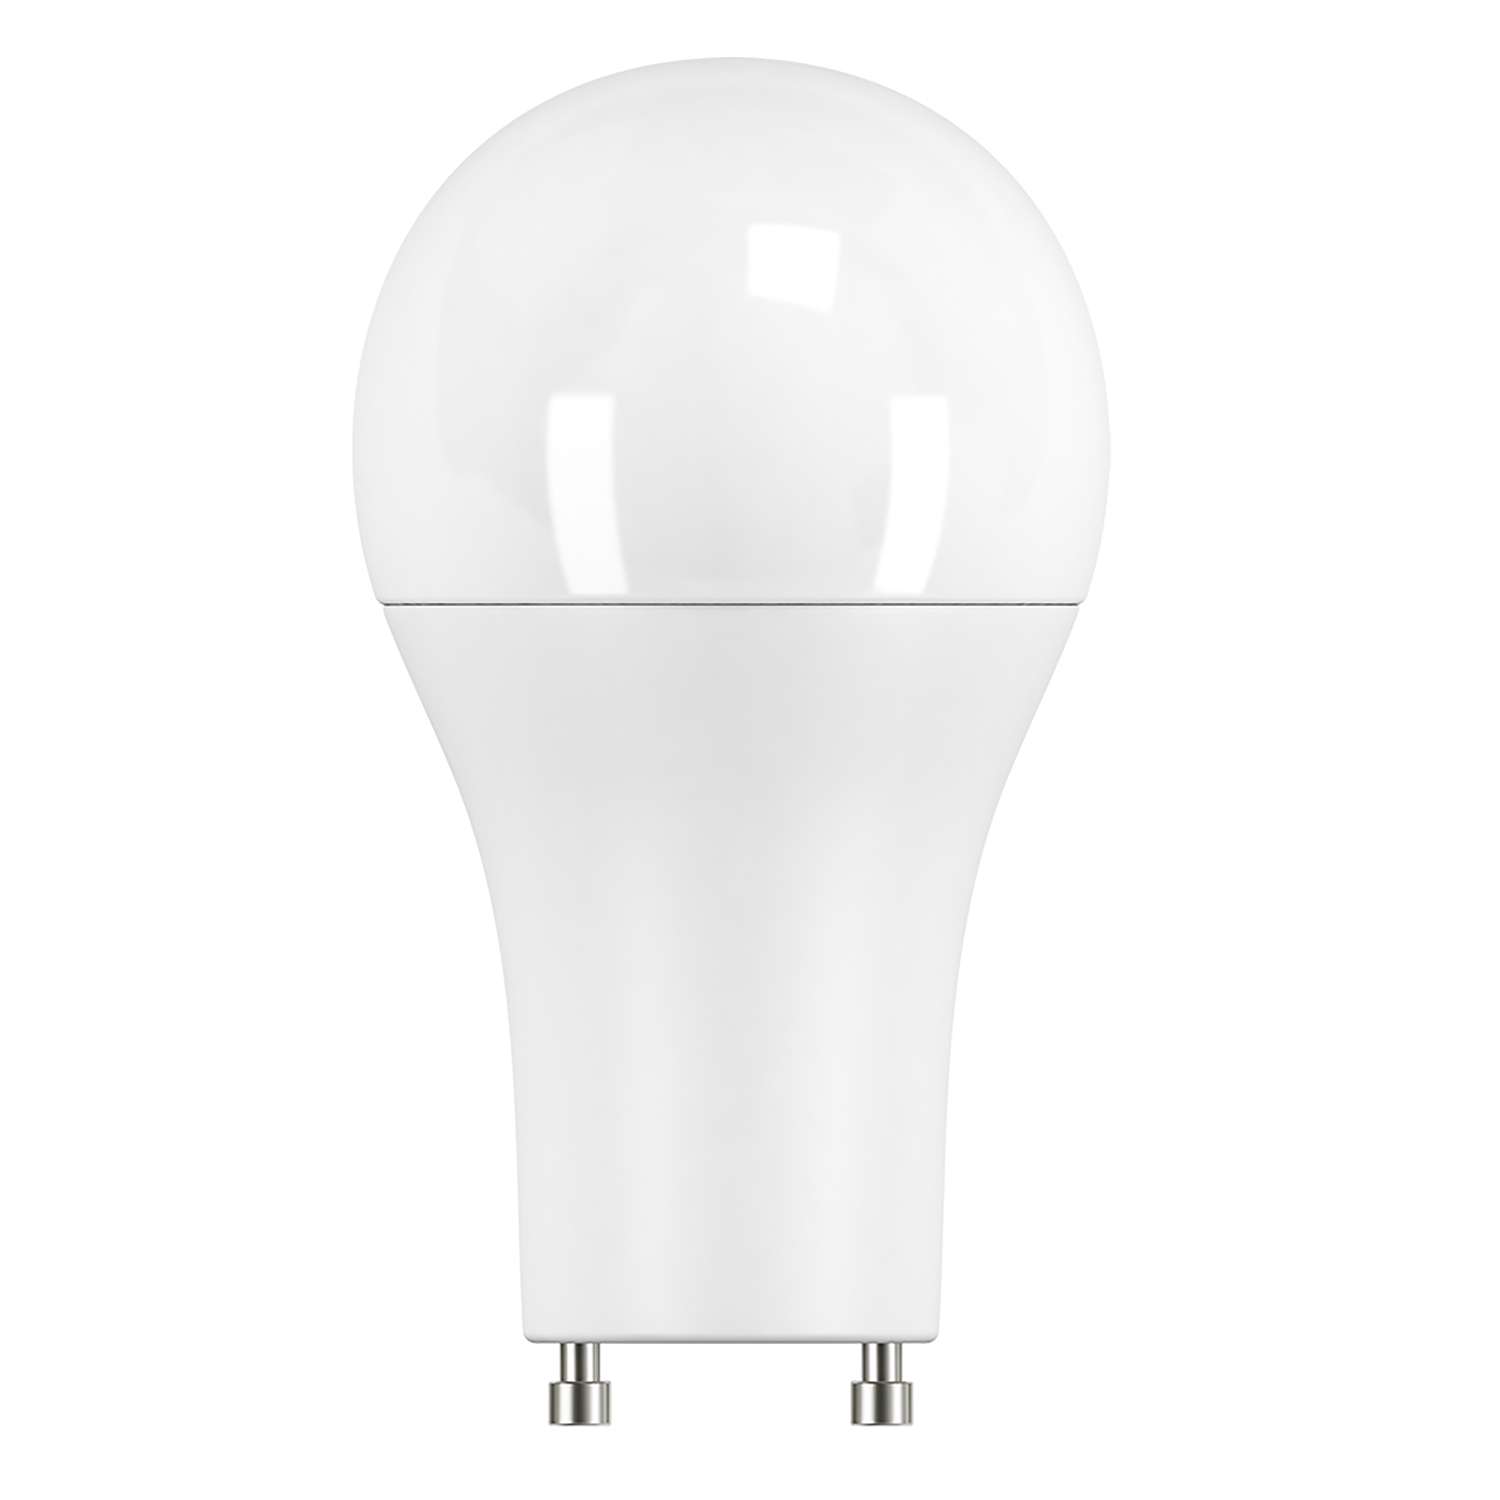 A19FR9/840/OMNI2/GU24/LED 83182 LED A19 9.5W 4000K GU24 NON-DIMMABLE OMNIDIRECTIONAL ProLED